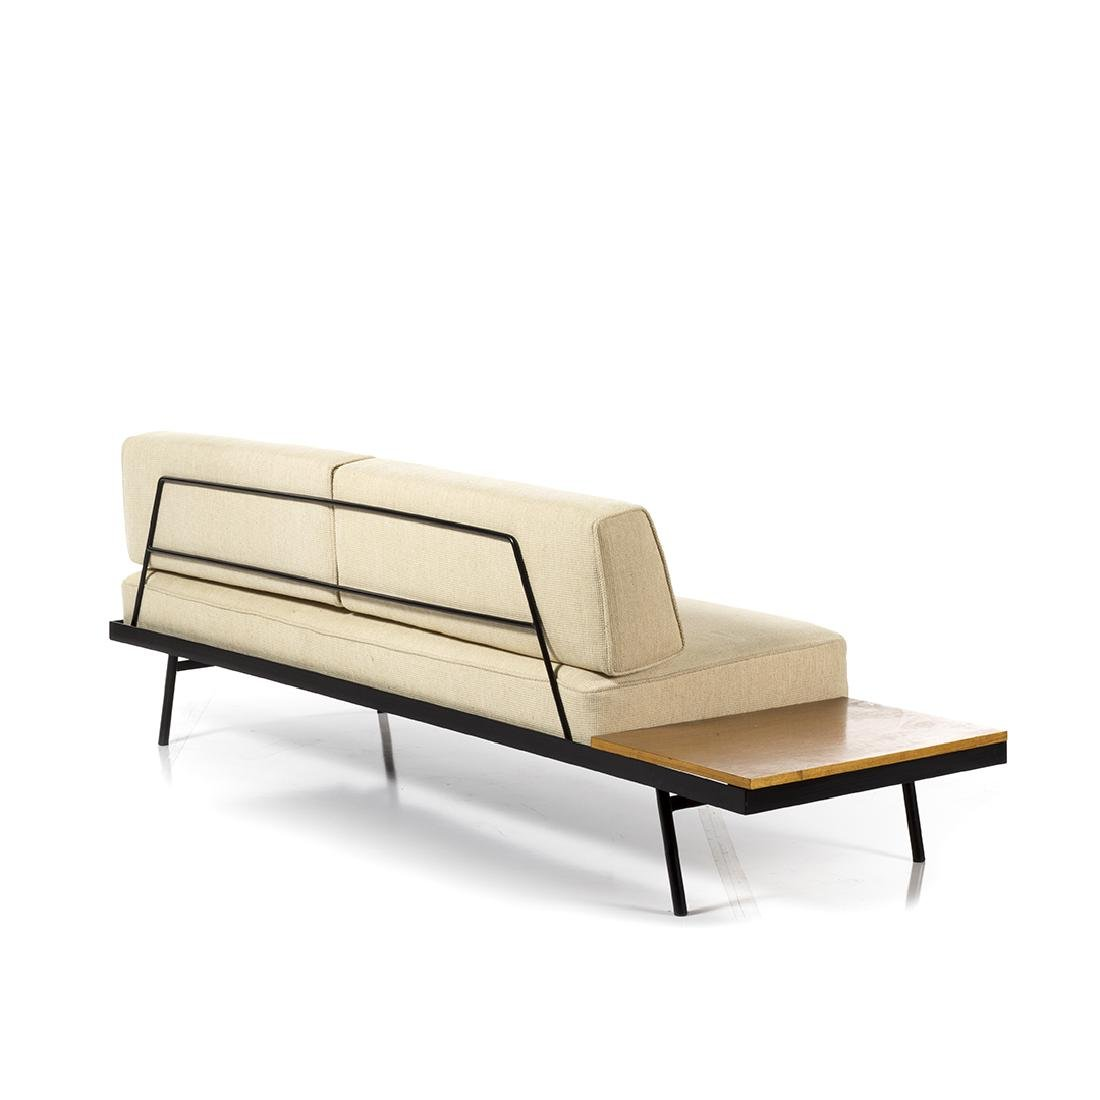 Bates and Gregory Sofa - 3